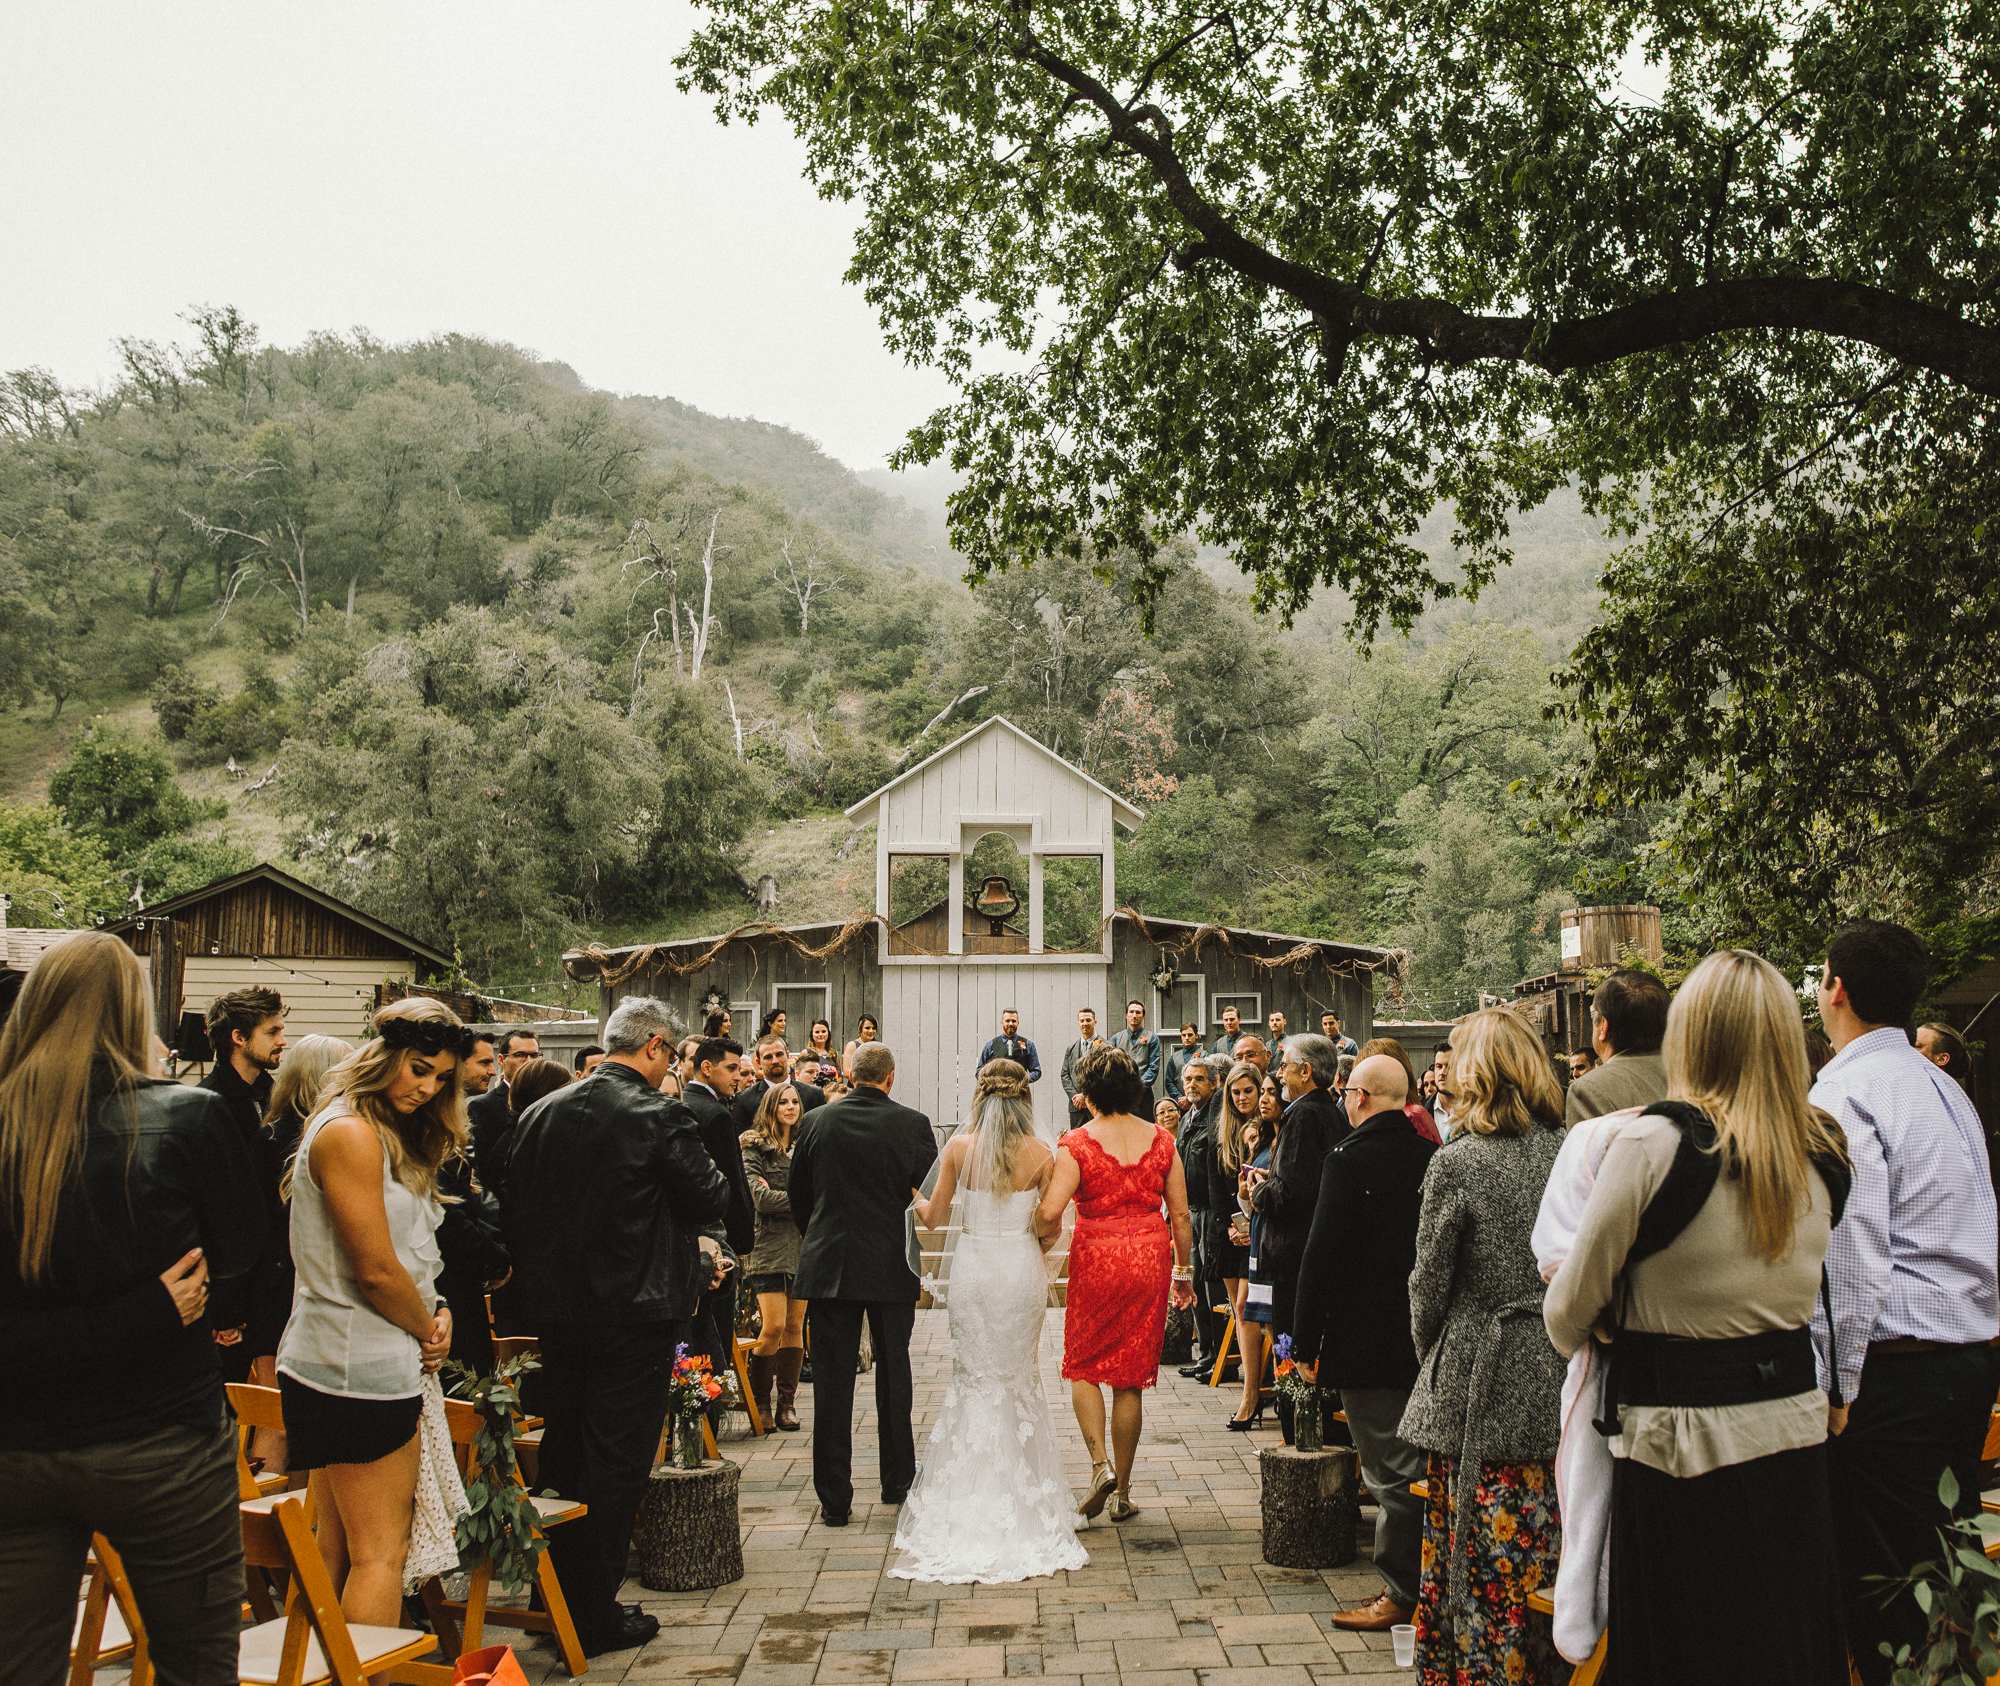 Isaiah & Taylor Photography - Los Angeles - Destination Wedding Photographers - Oak Glen Wilshire Ranch Foggy Forest Wedding-57.jpg